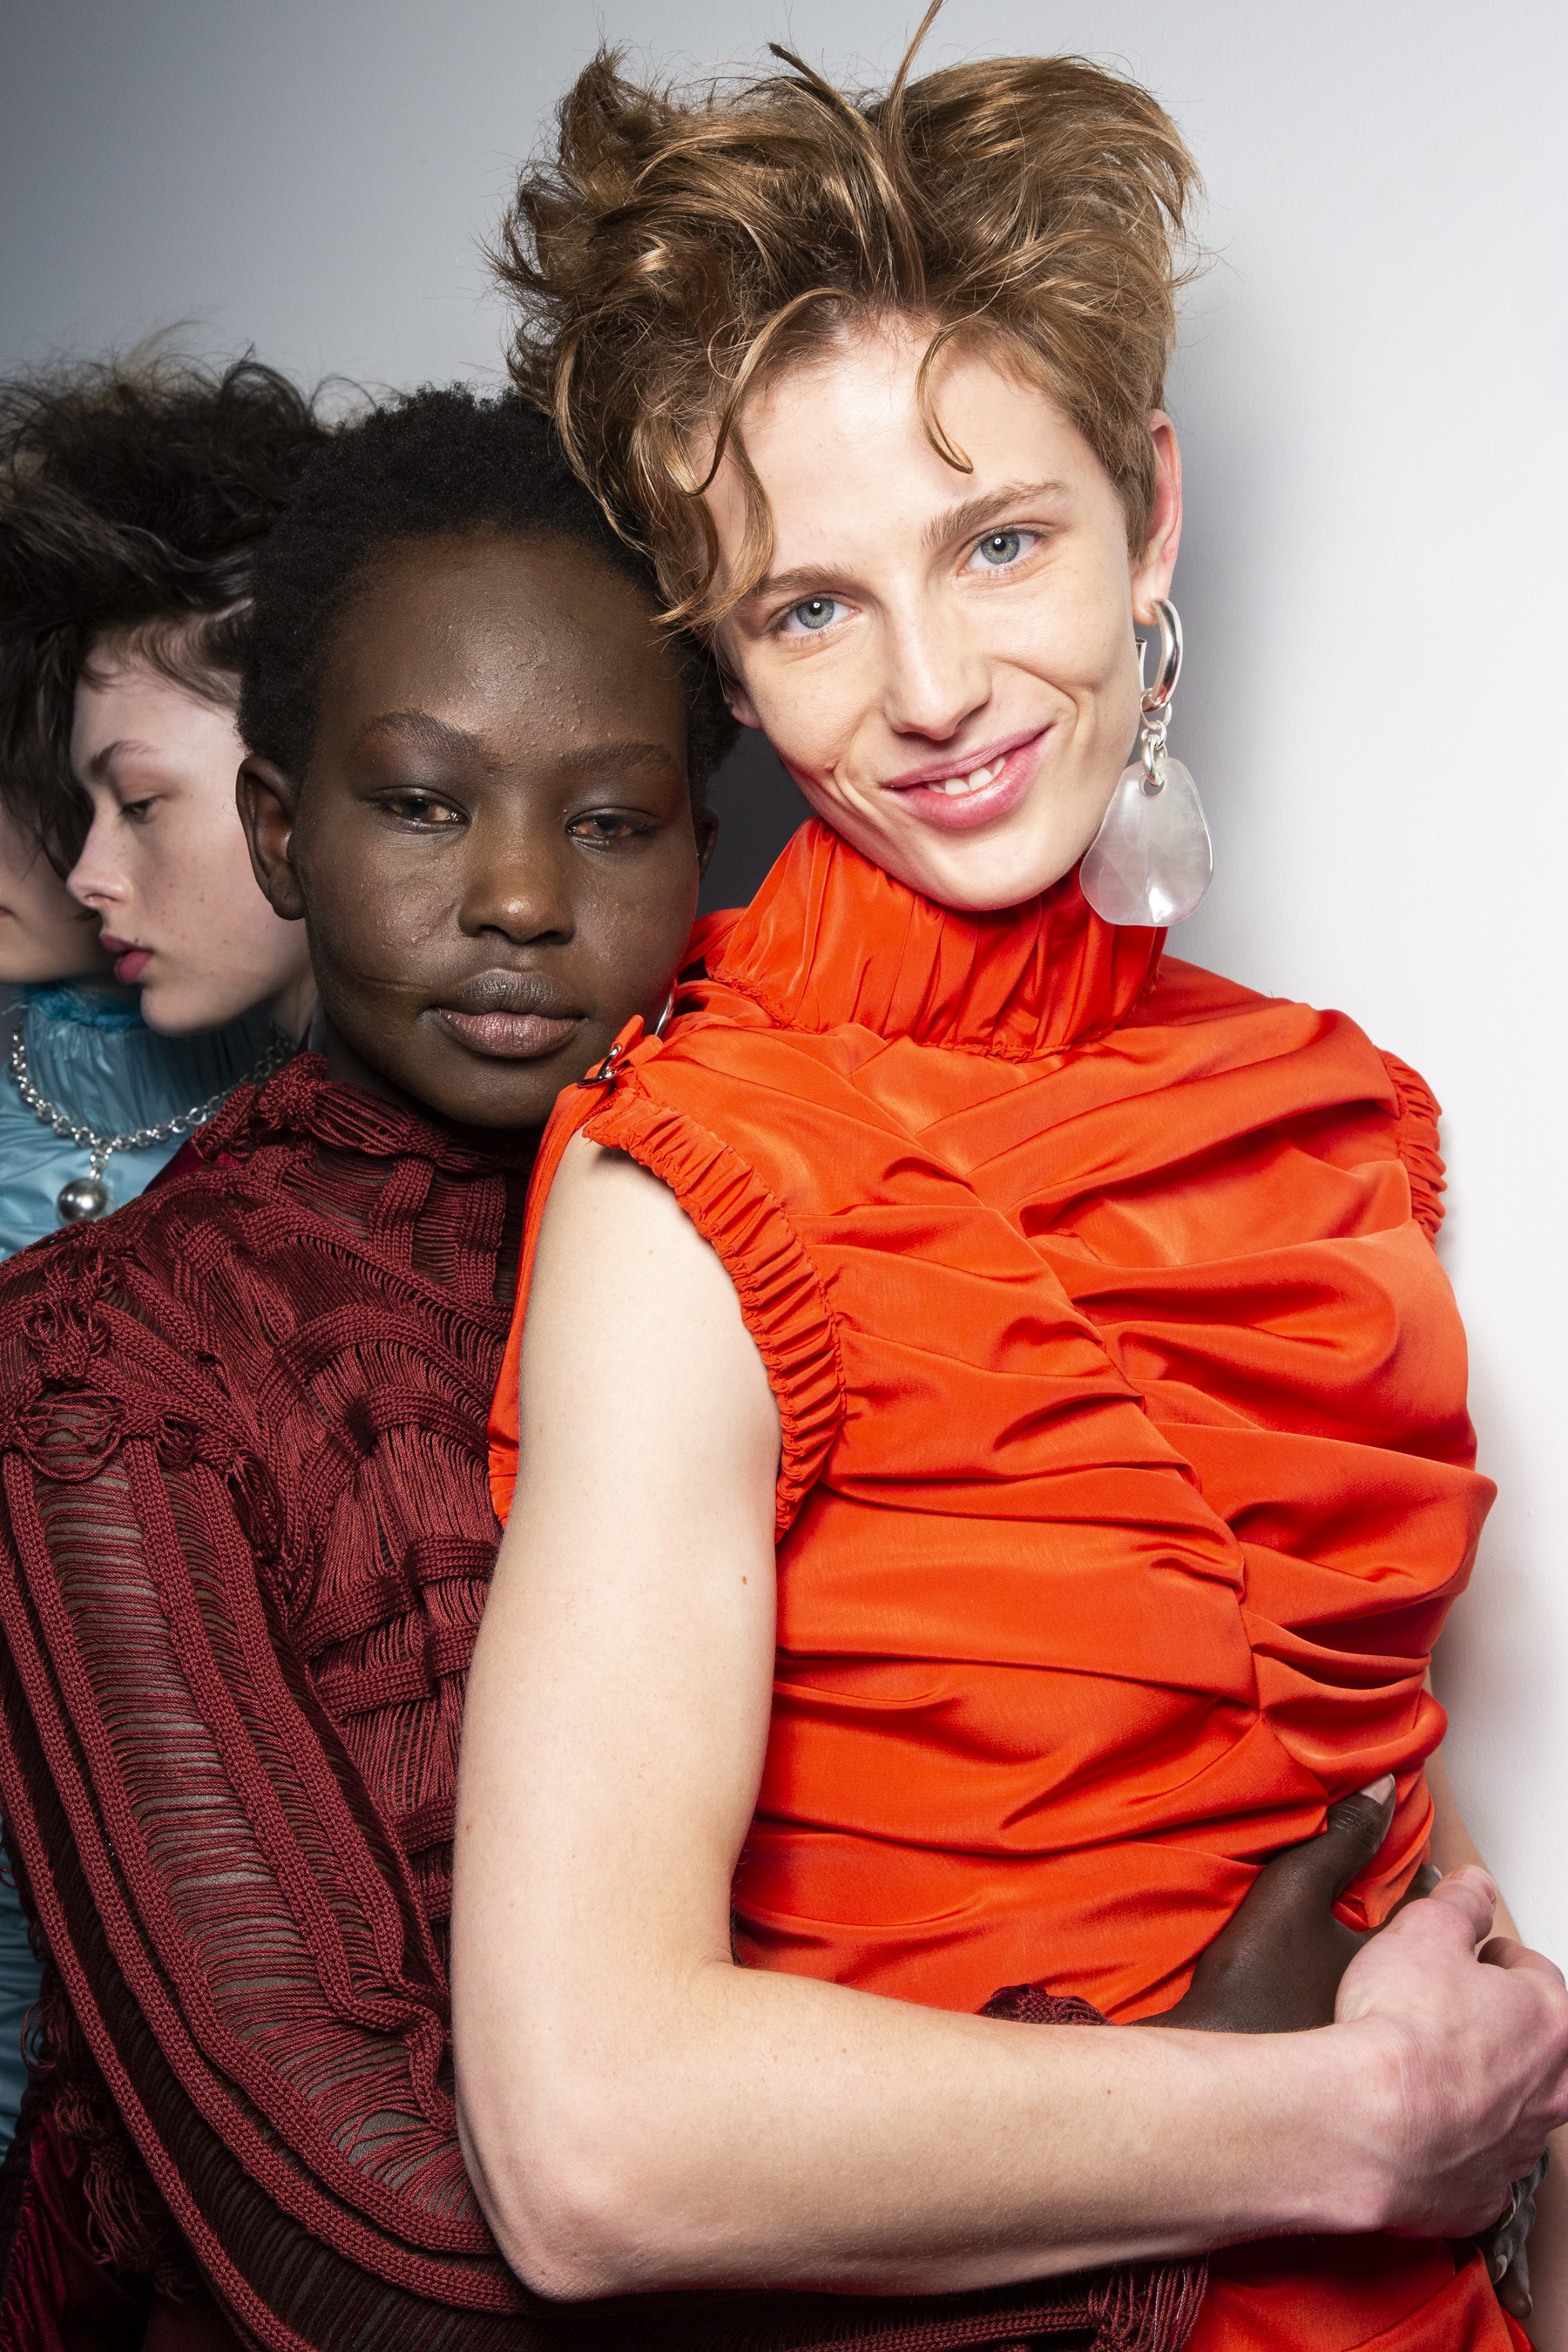 Richard Malone Fall 2019 Fashion Show Backstage